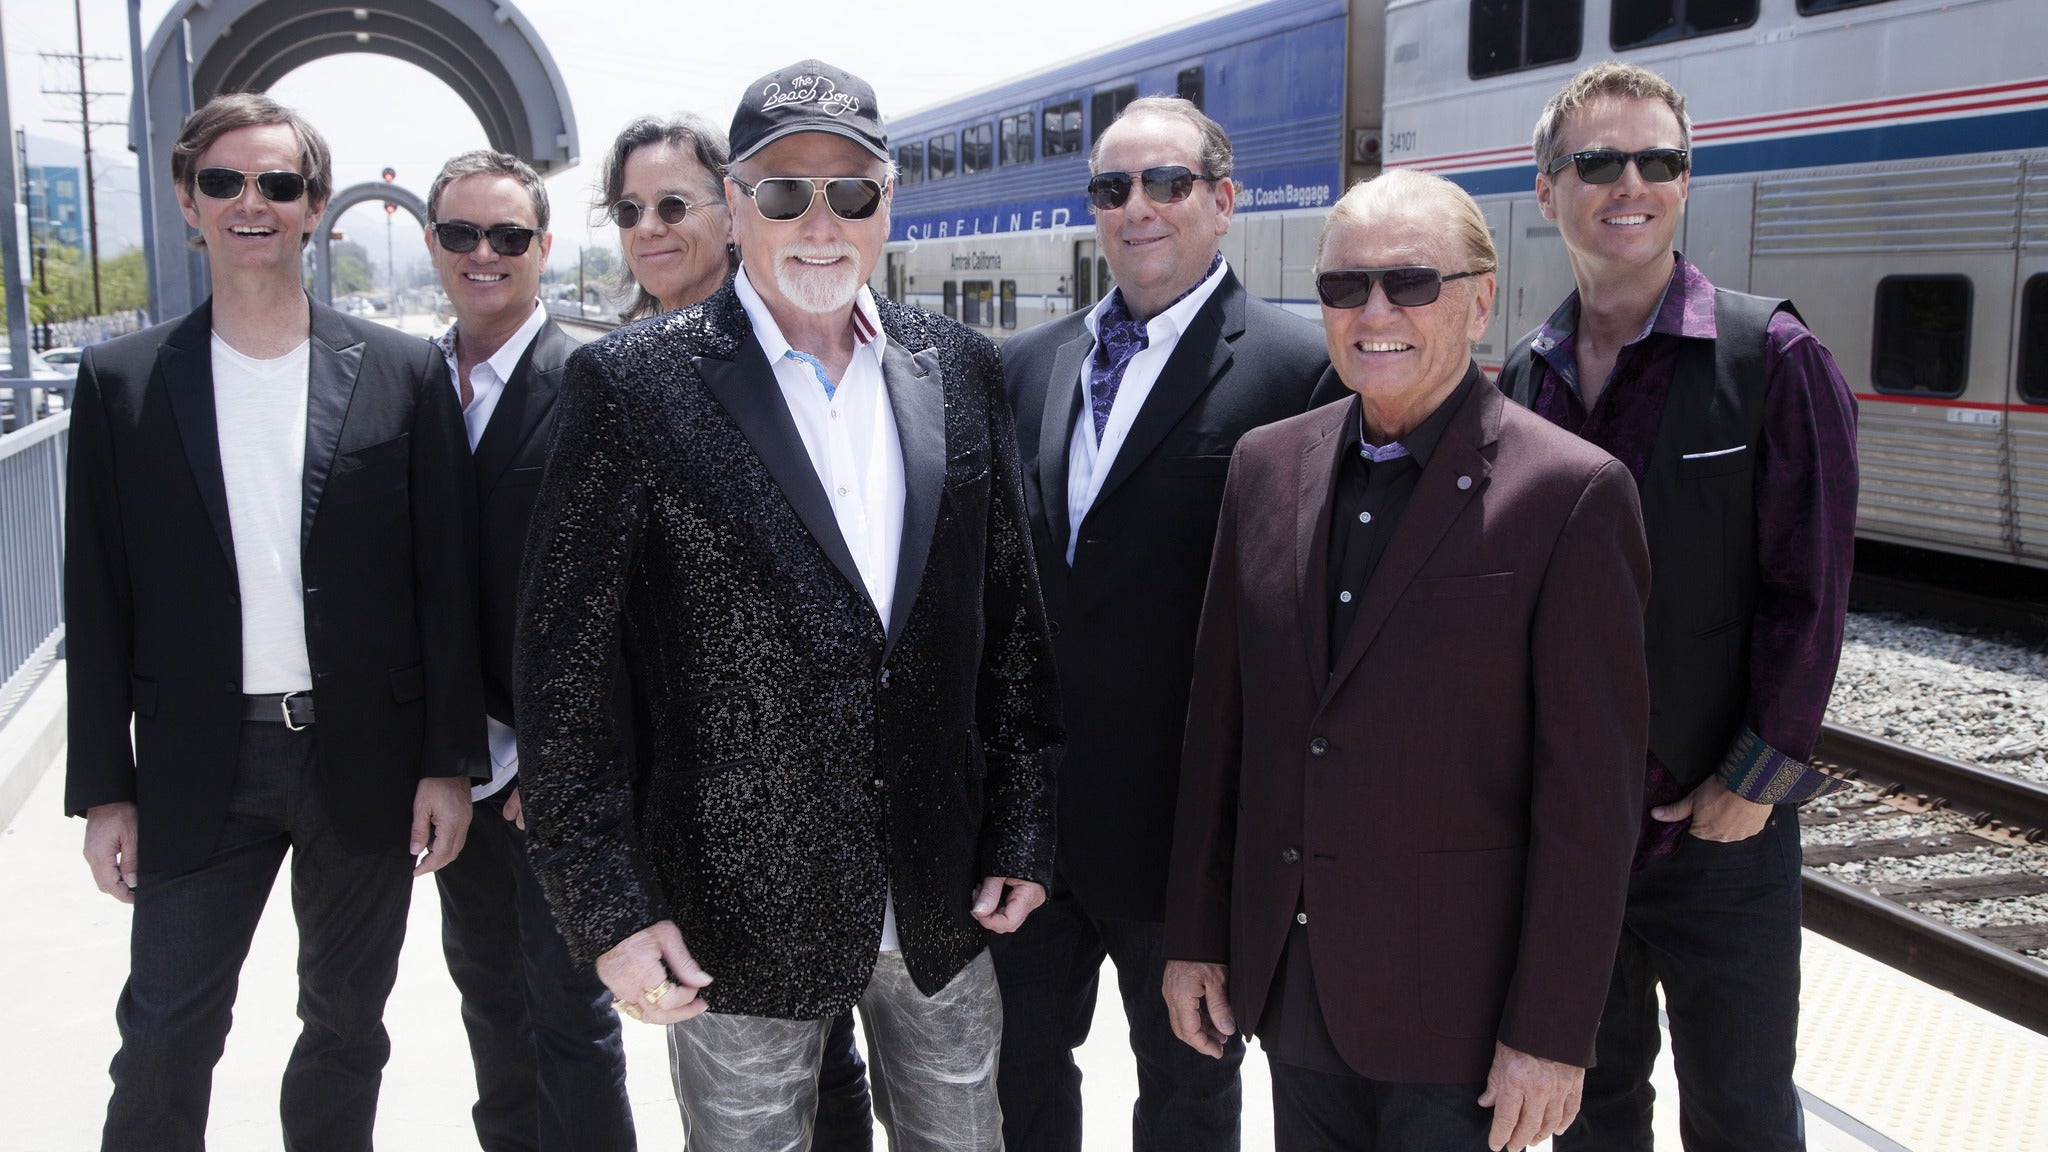 Beach Boys at Johnny Mercer Theatre